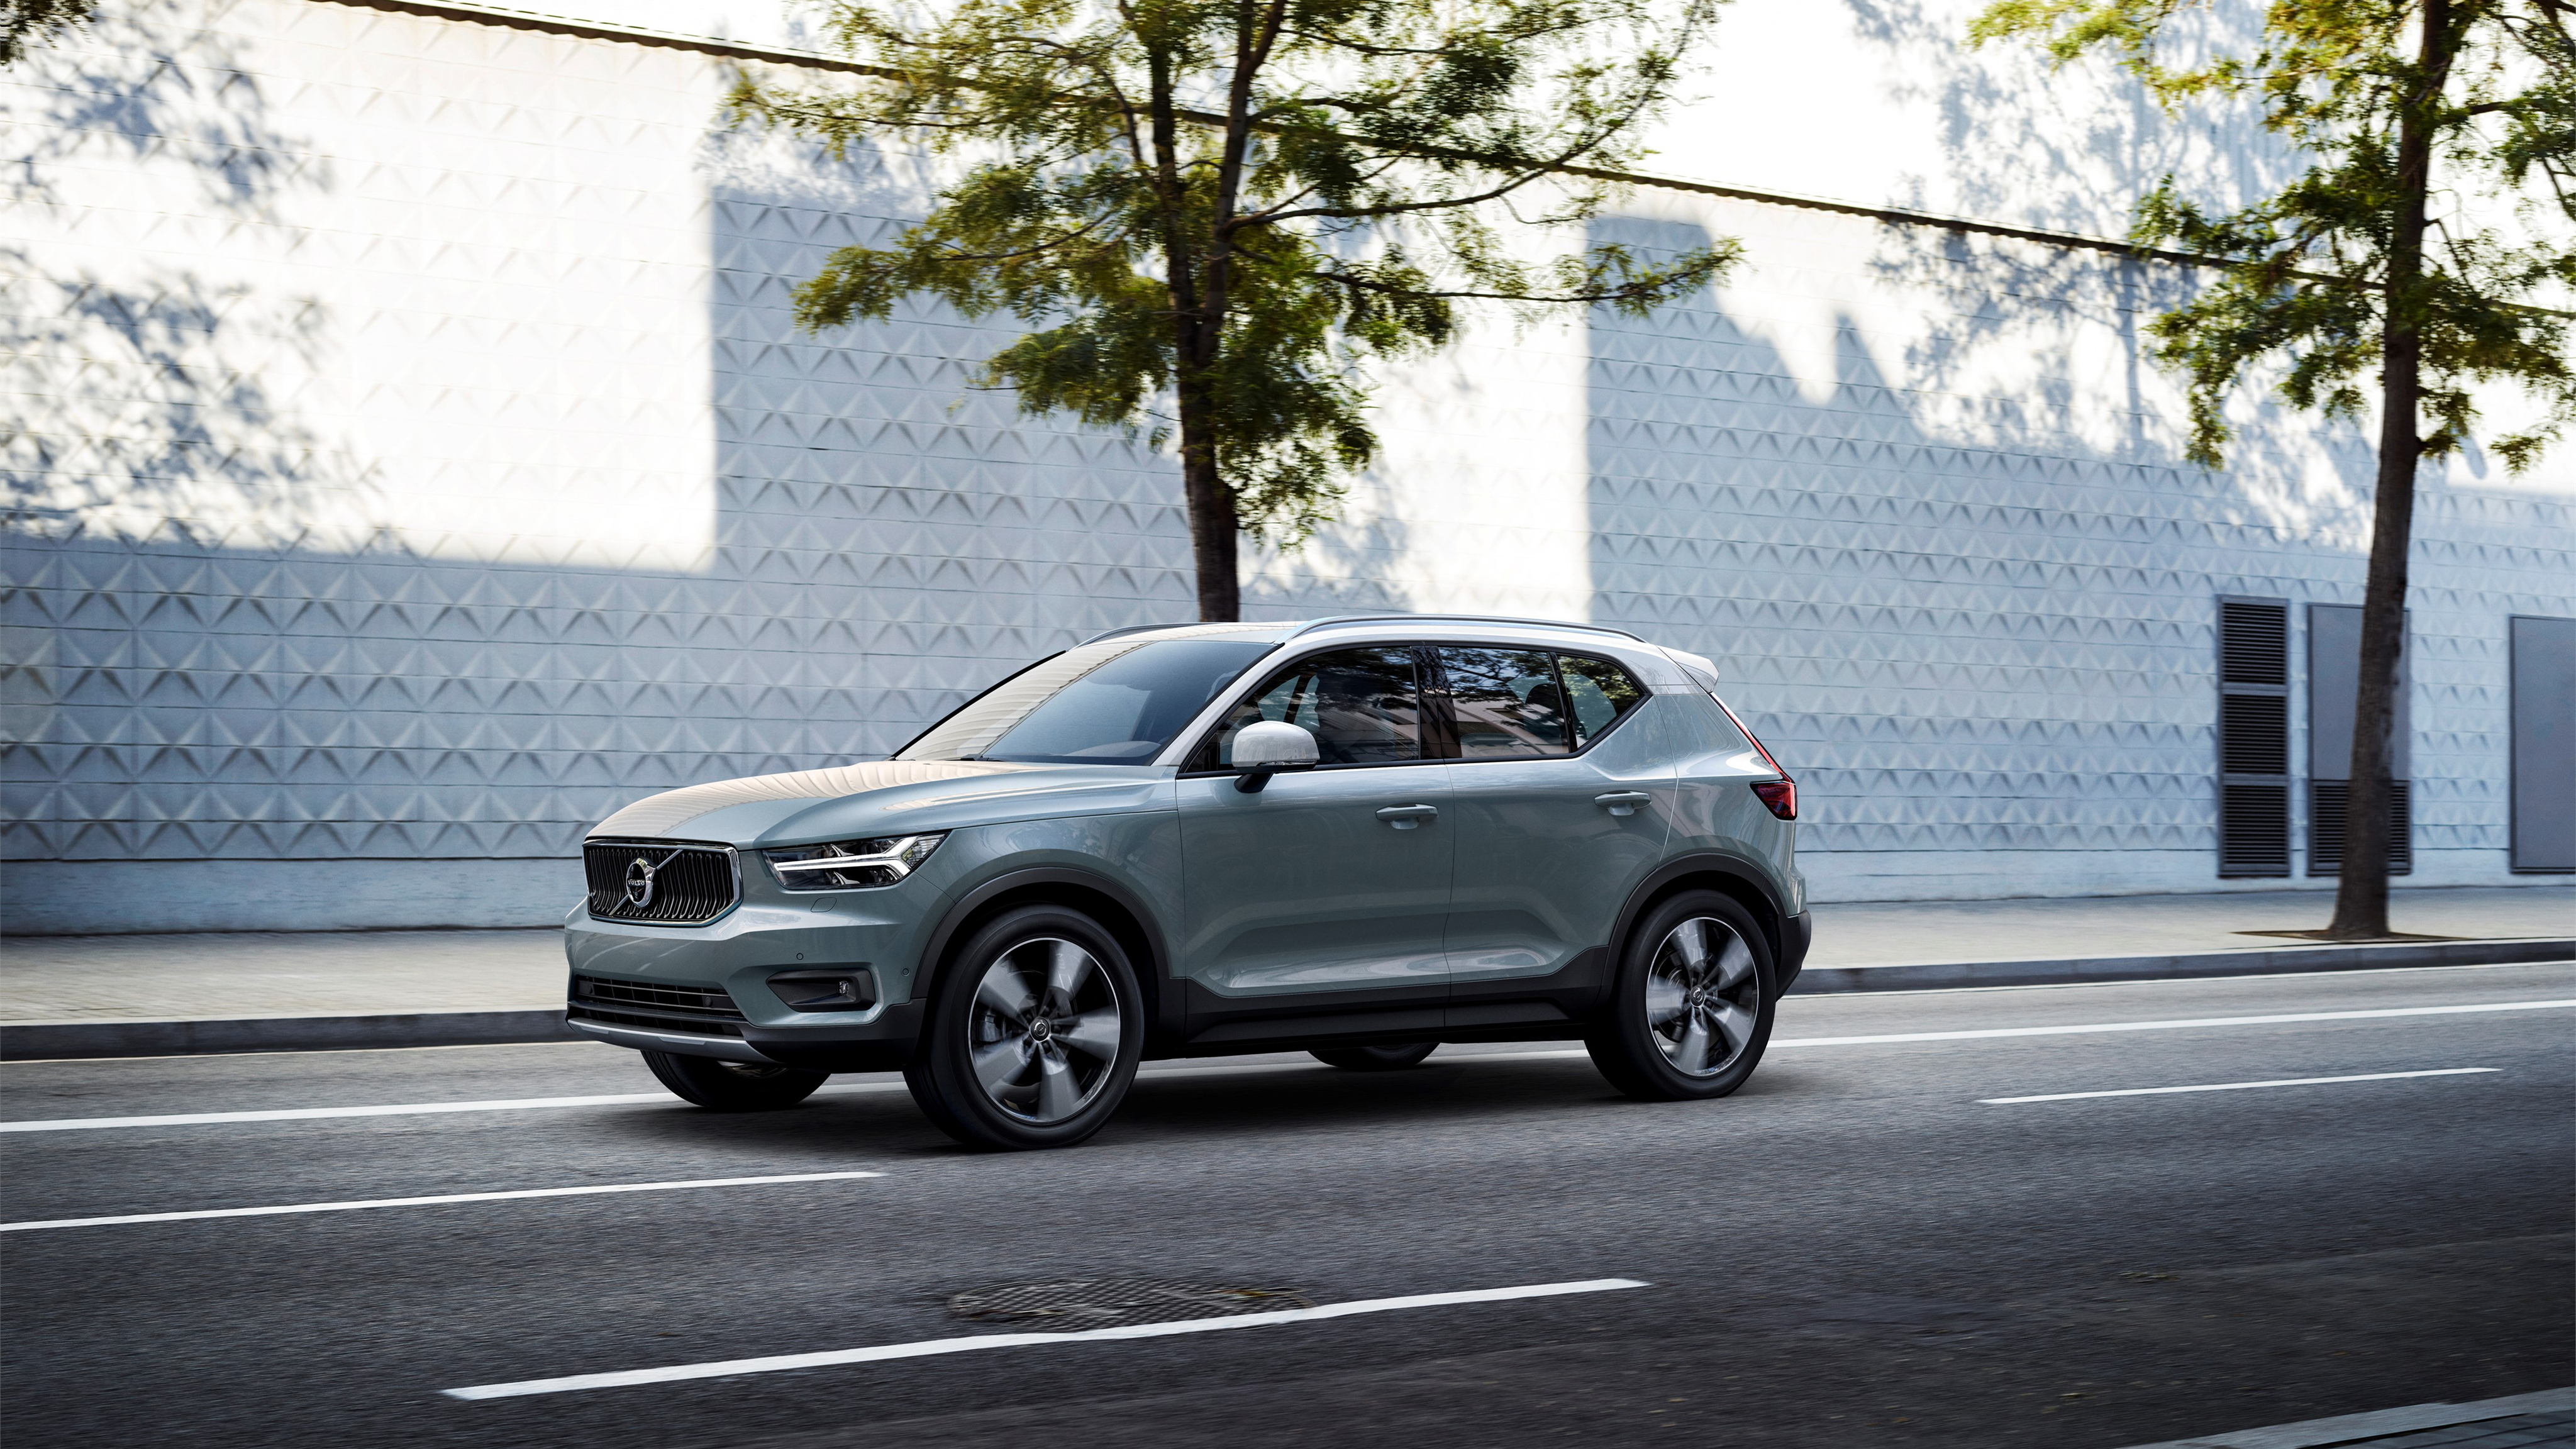 2018 volvo xc40 t5 4k 2 wallpaper hd car wallpapers id 8680. Black Bedroom Furniture Sets. Home Design Ideas